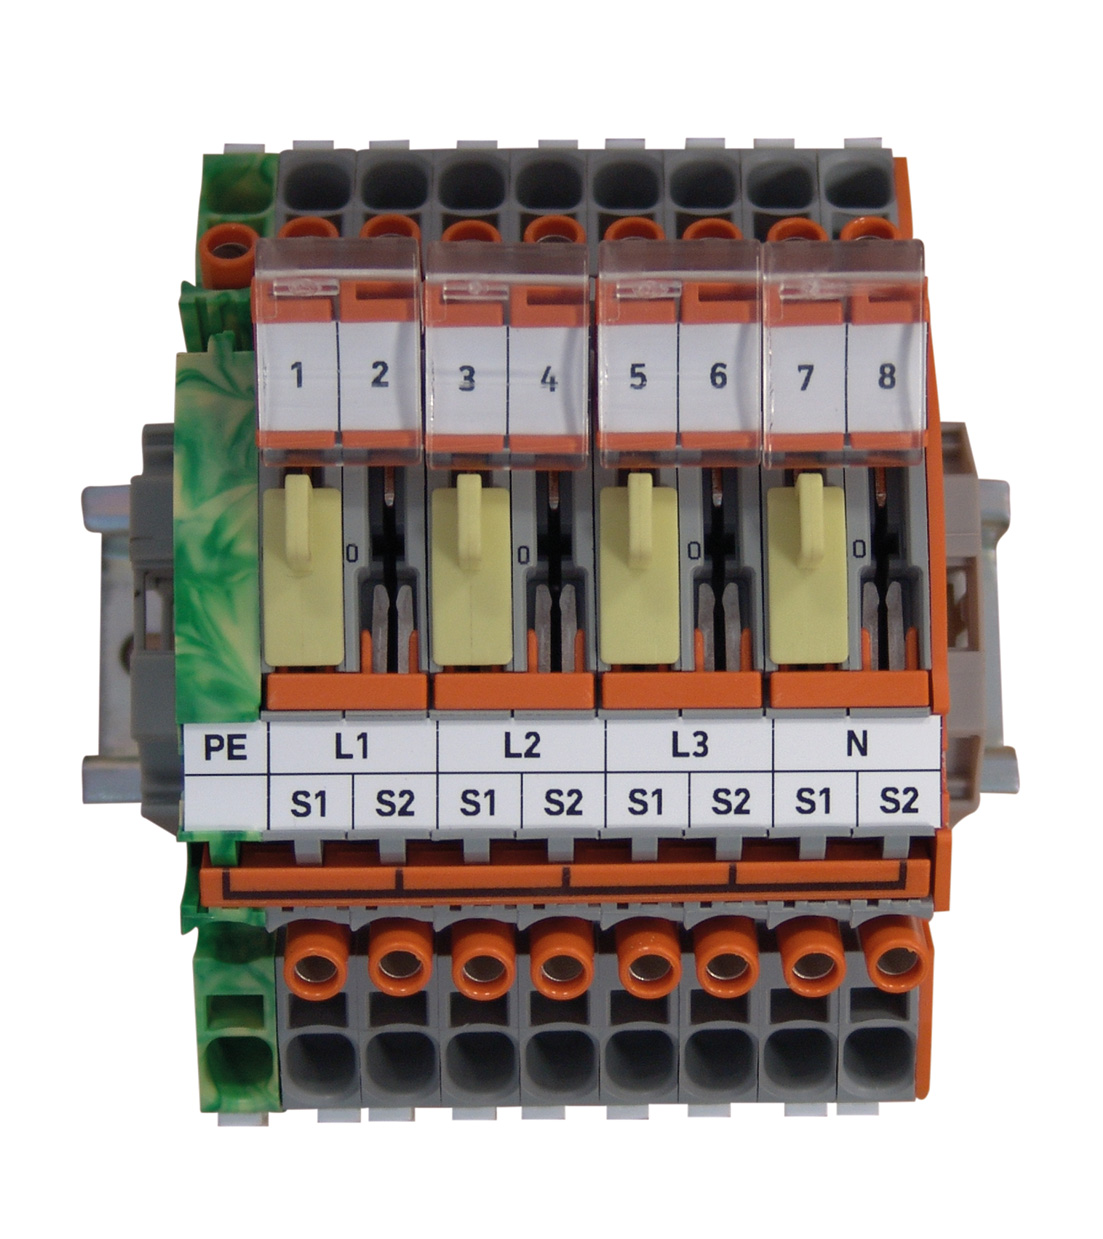 Fig.: Current transformer terminal block